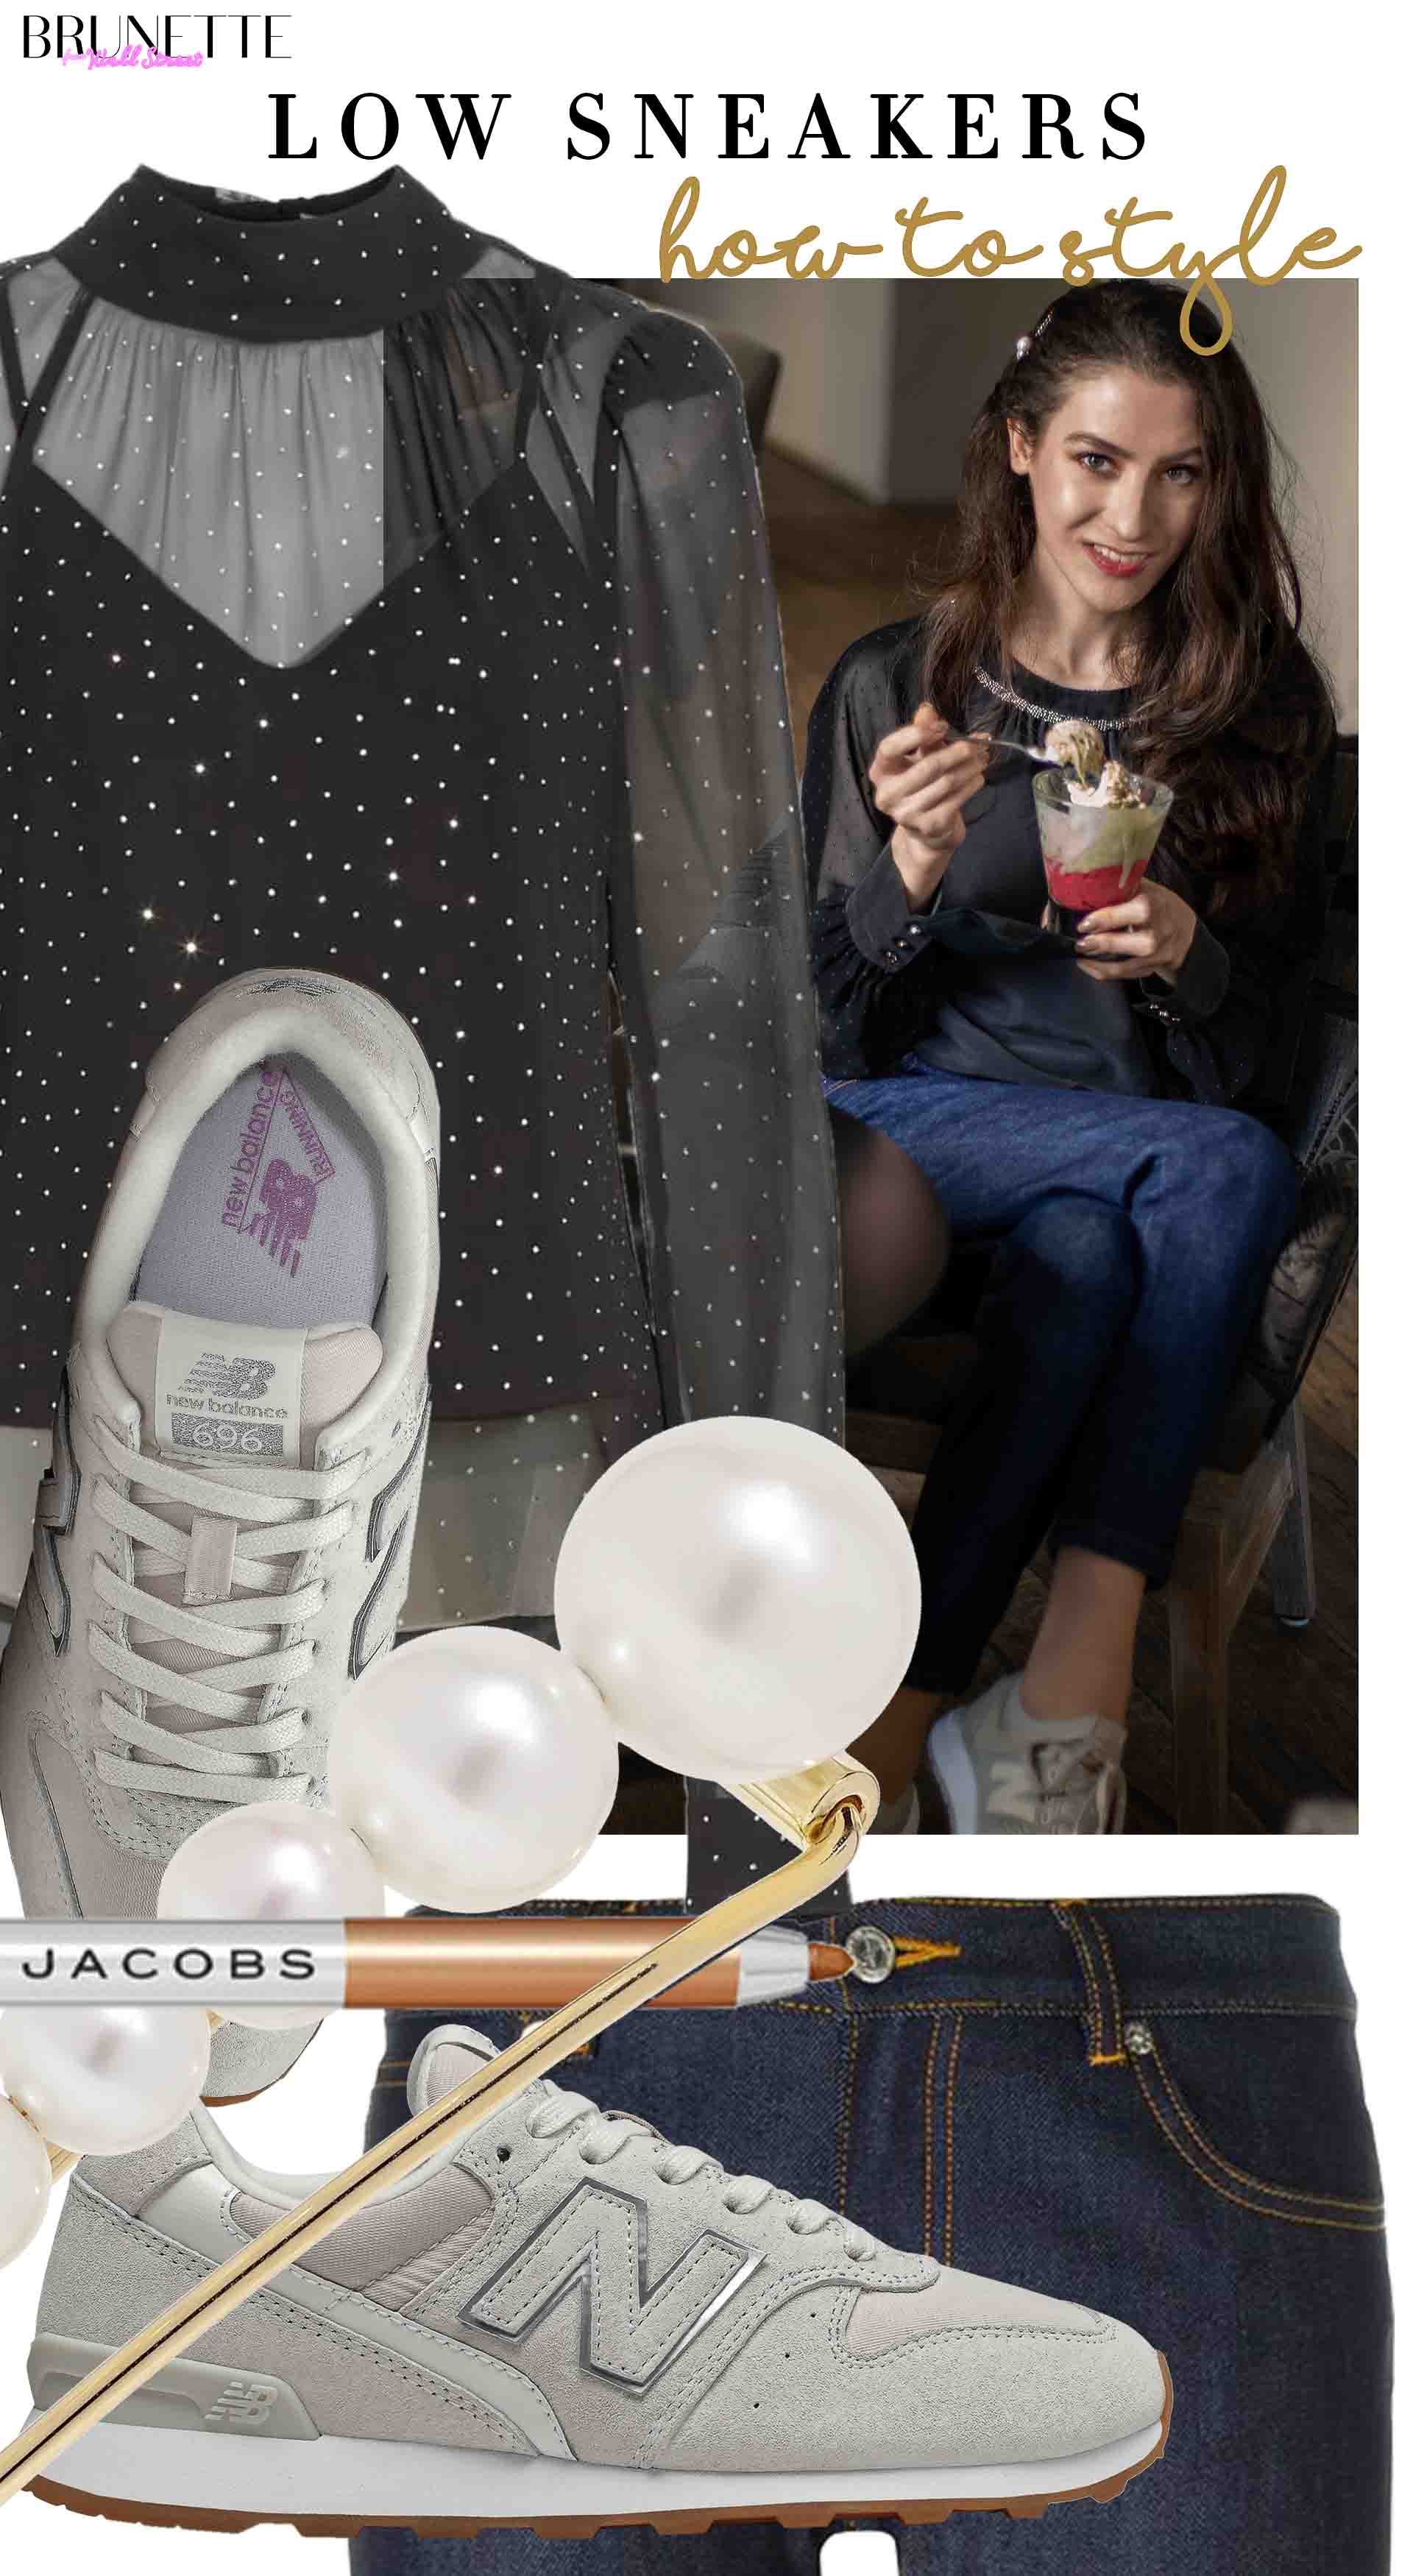 Brunette from Wall Street how to style low sneakers for spring Mother's Day brunch